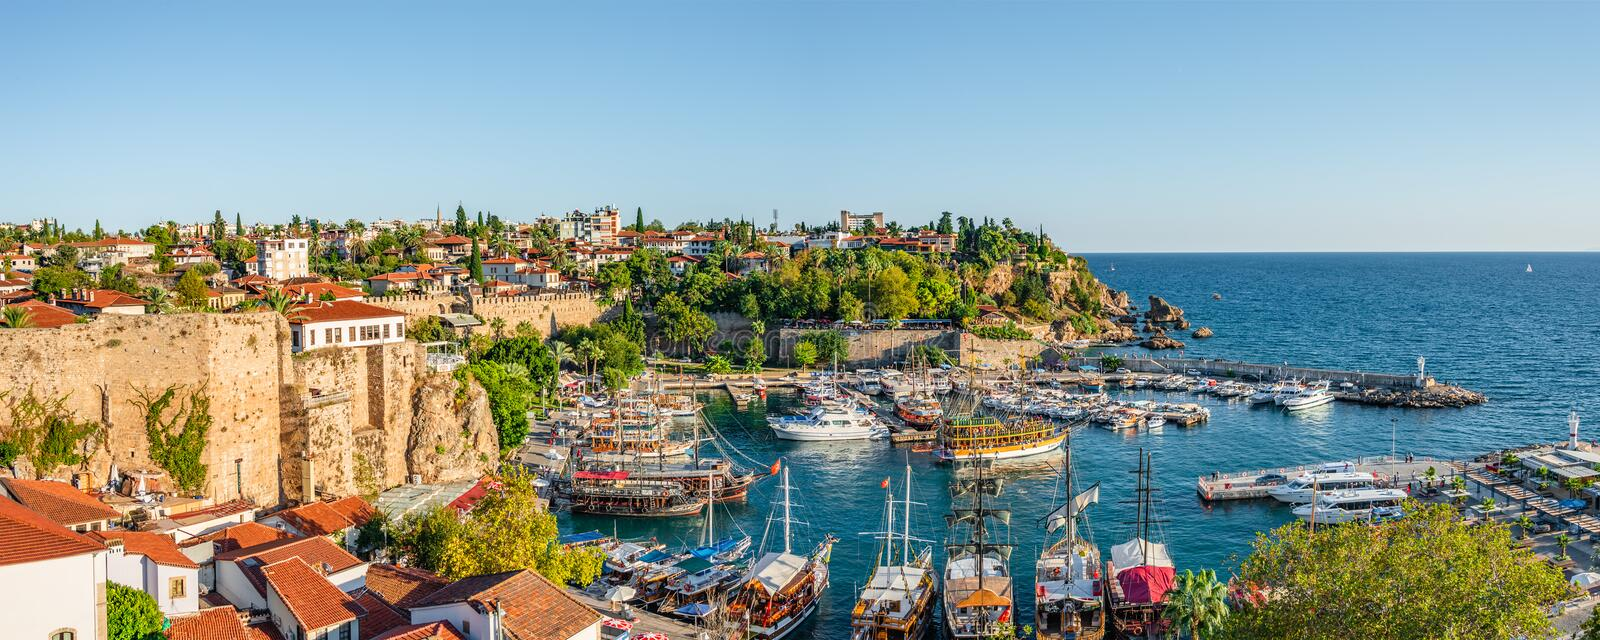 Panoramic view of old harbor and downtown called Marina in Antalya, Turkey, summer royalty free stock photos